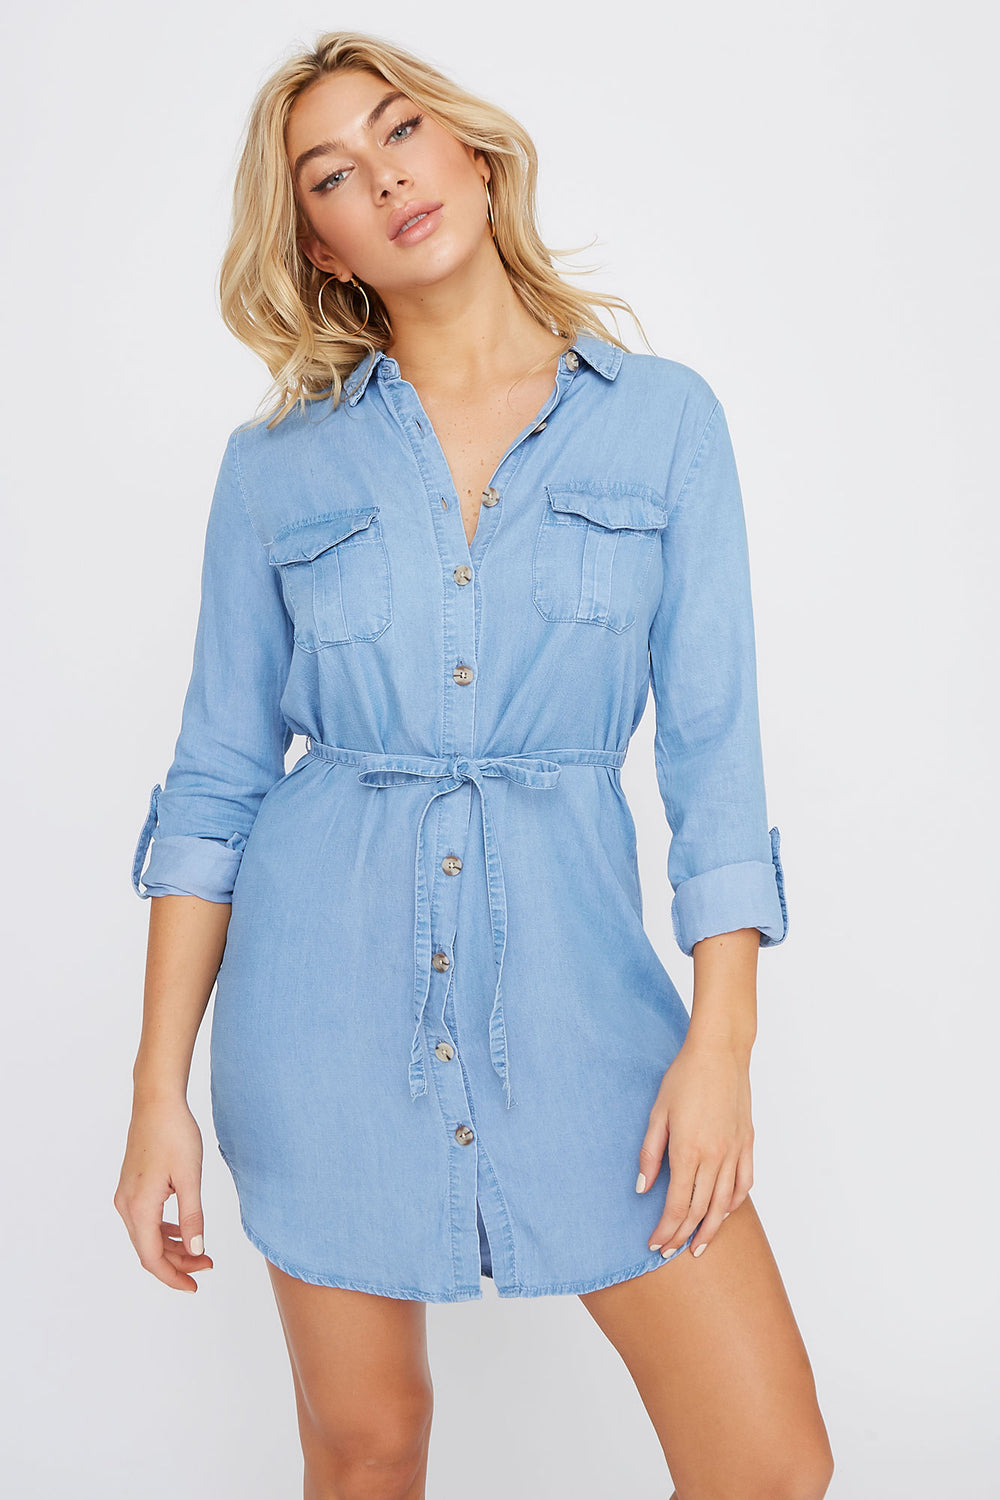 Chambray Button-Up Self Tie Dress Denim Blue